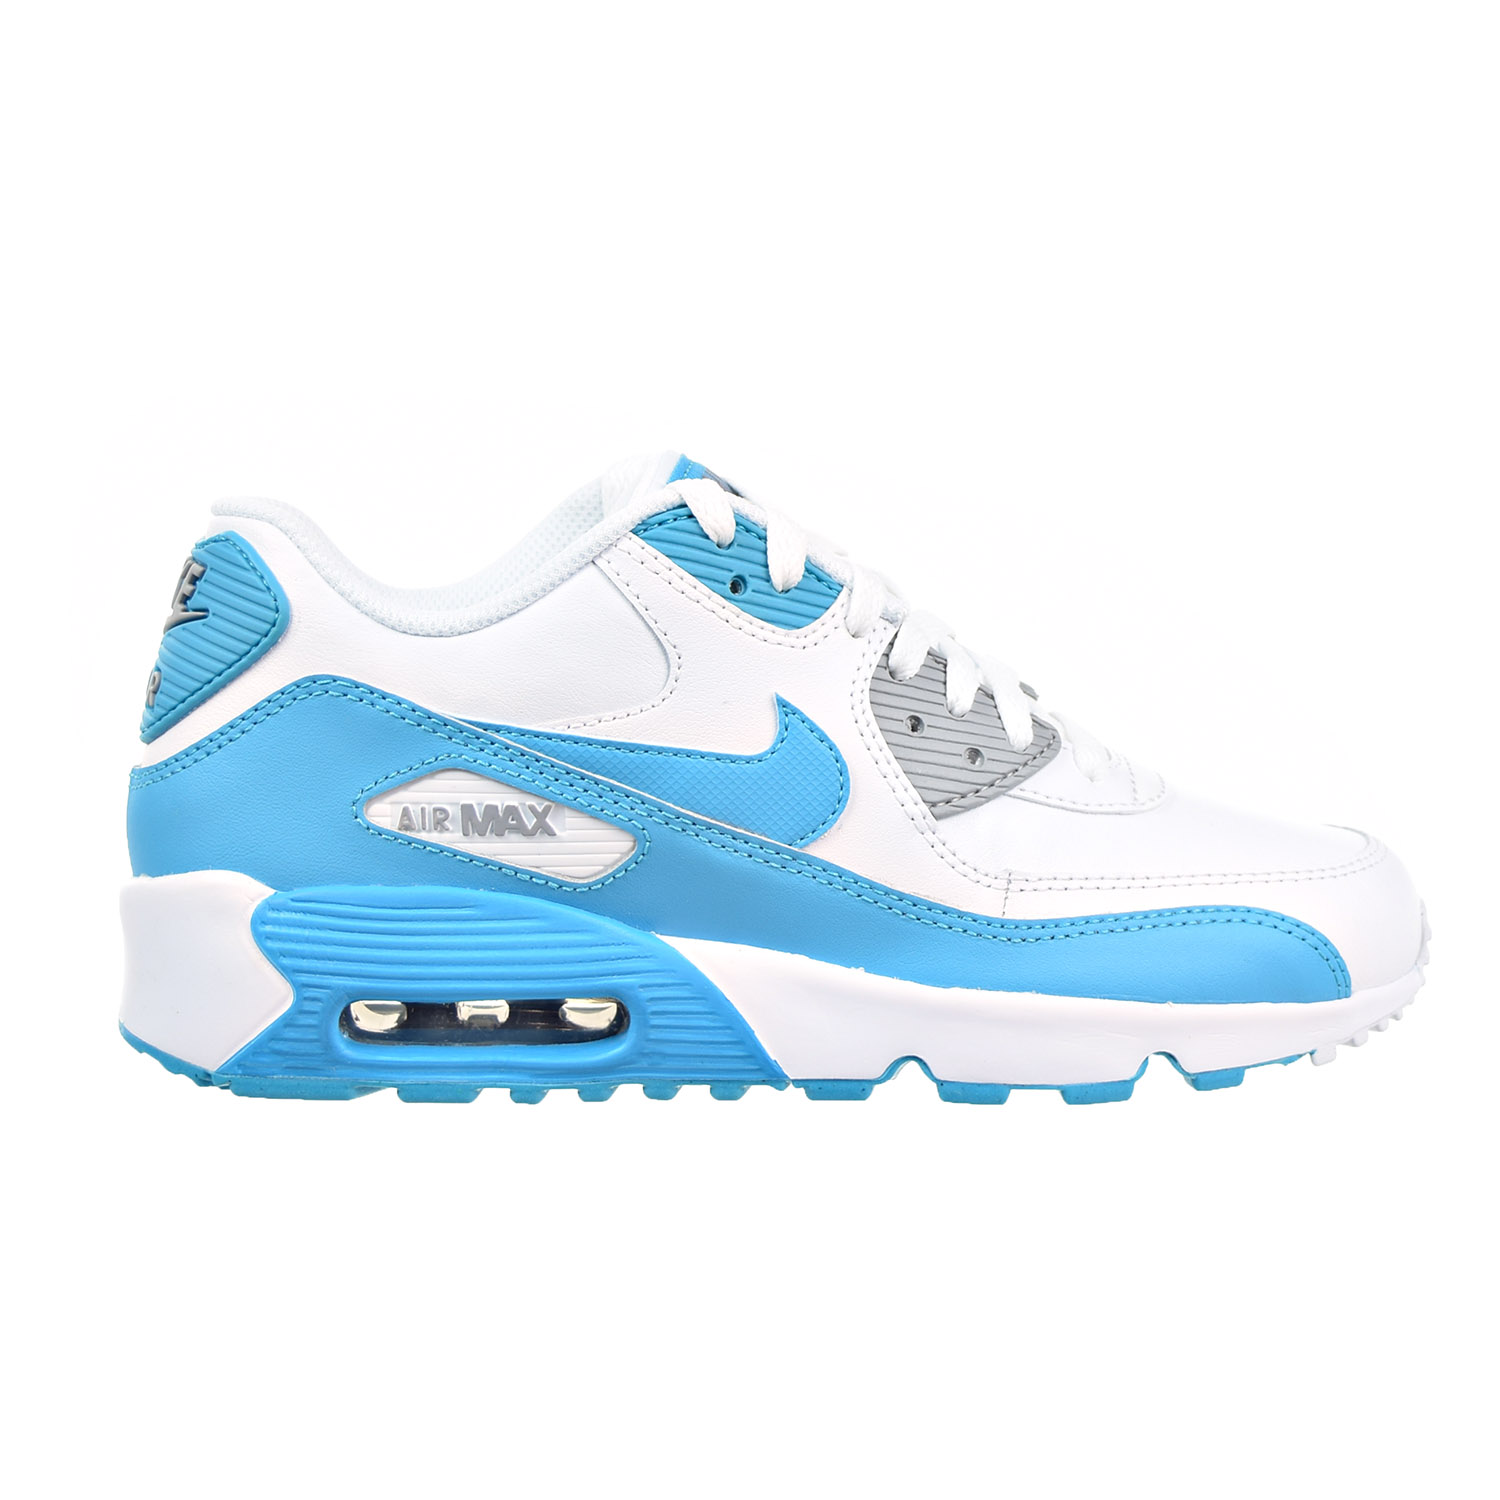 big sale a7ba0 9759f Details about Nike Air Max 90 LTR Big Kid s Shoes White Chlorine Blue Wolf  Grey 833376-101